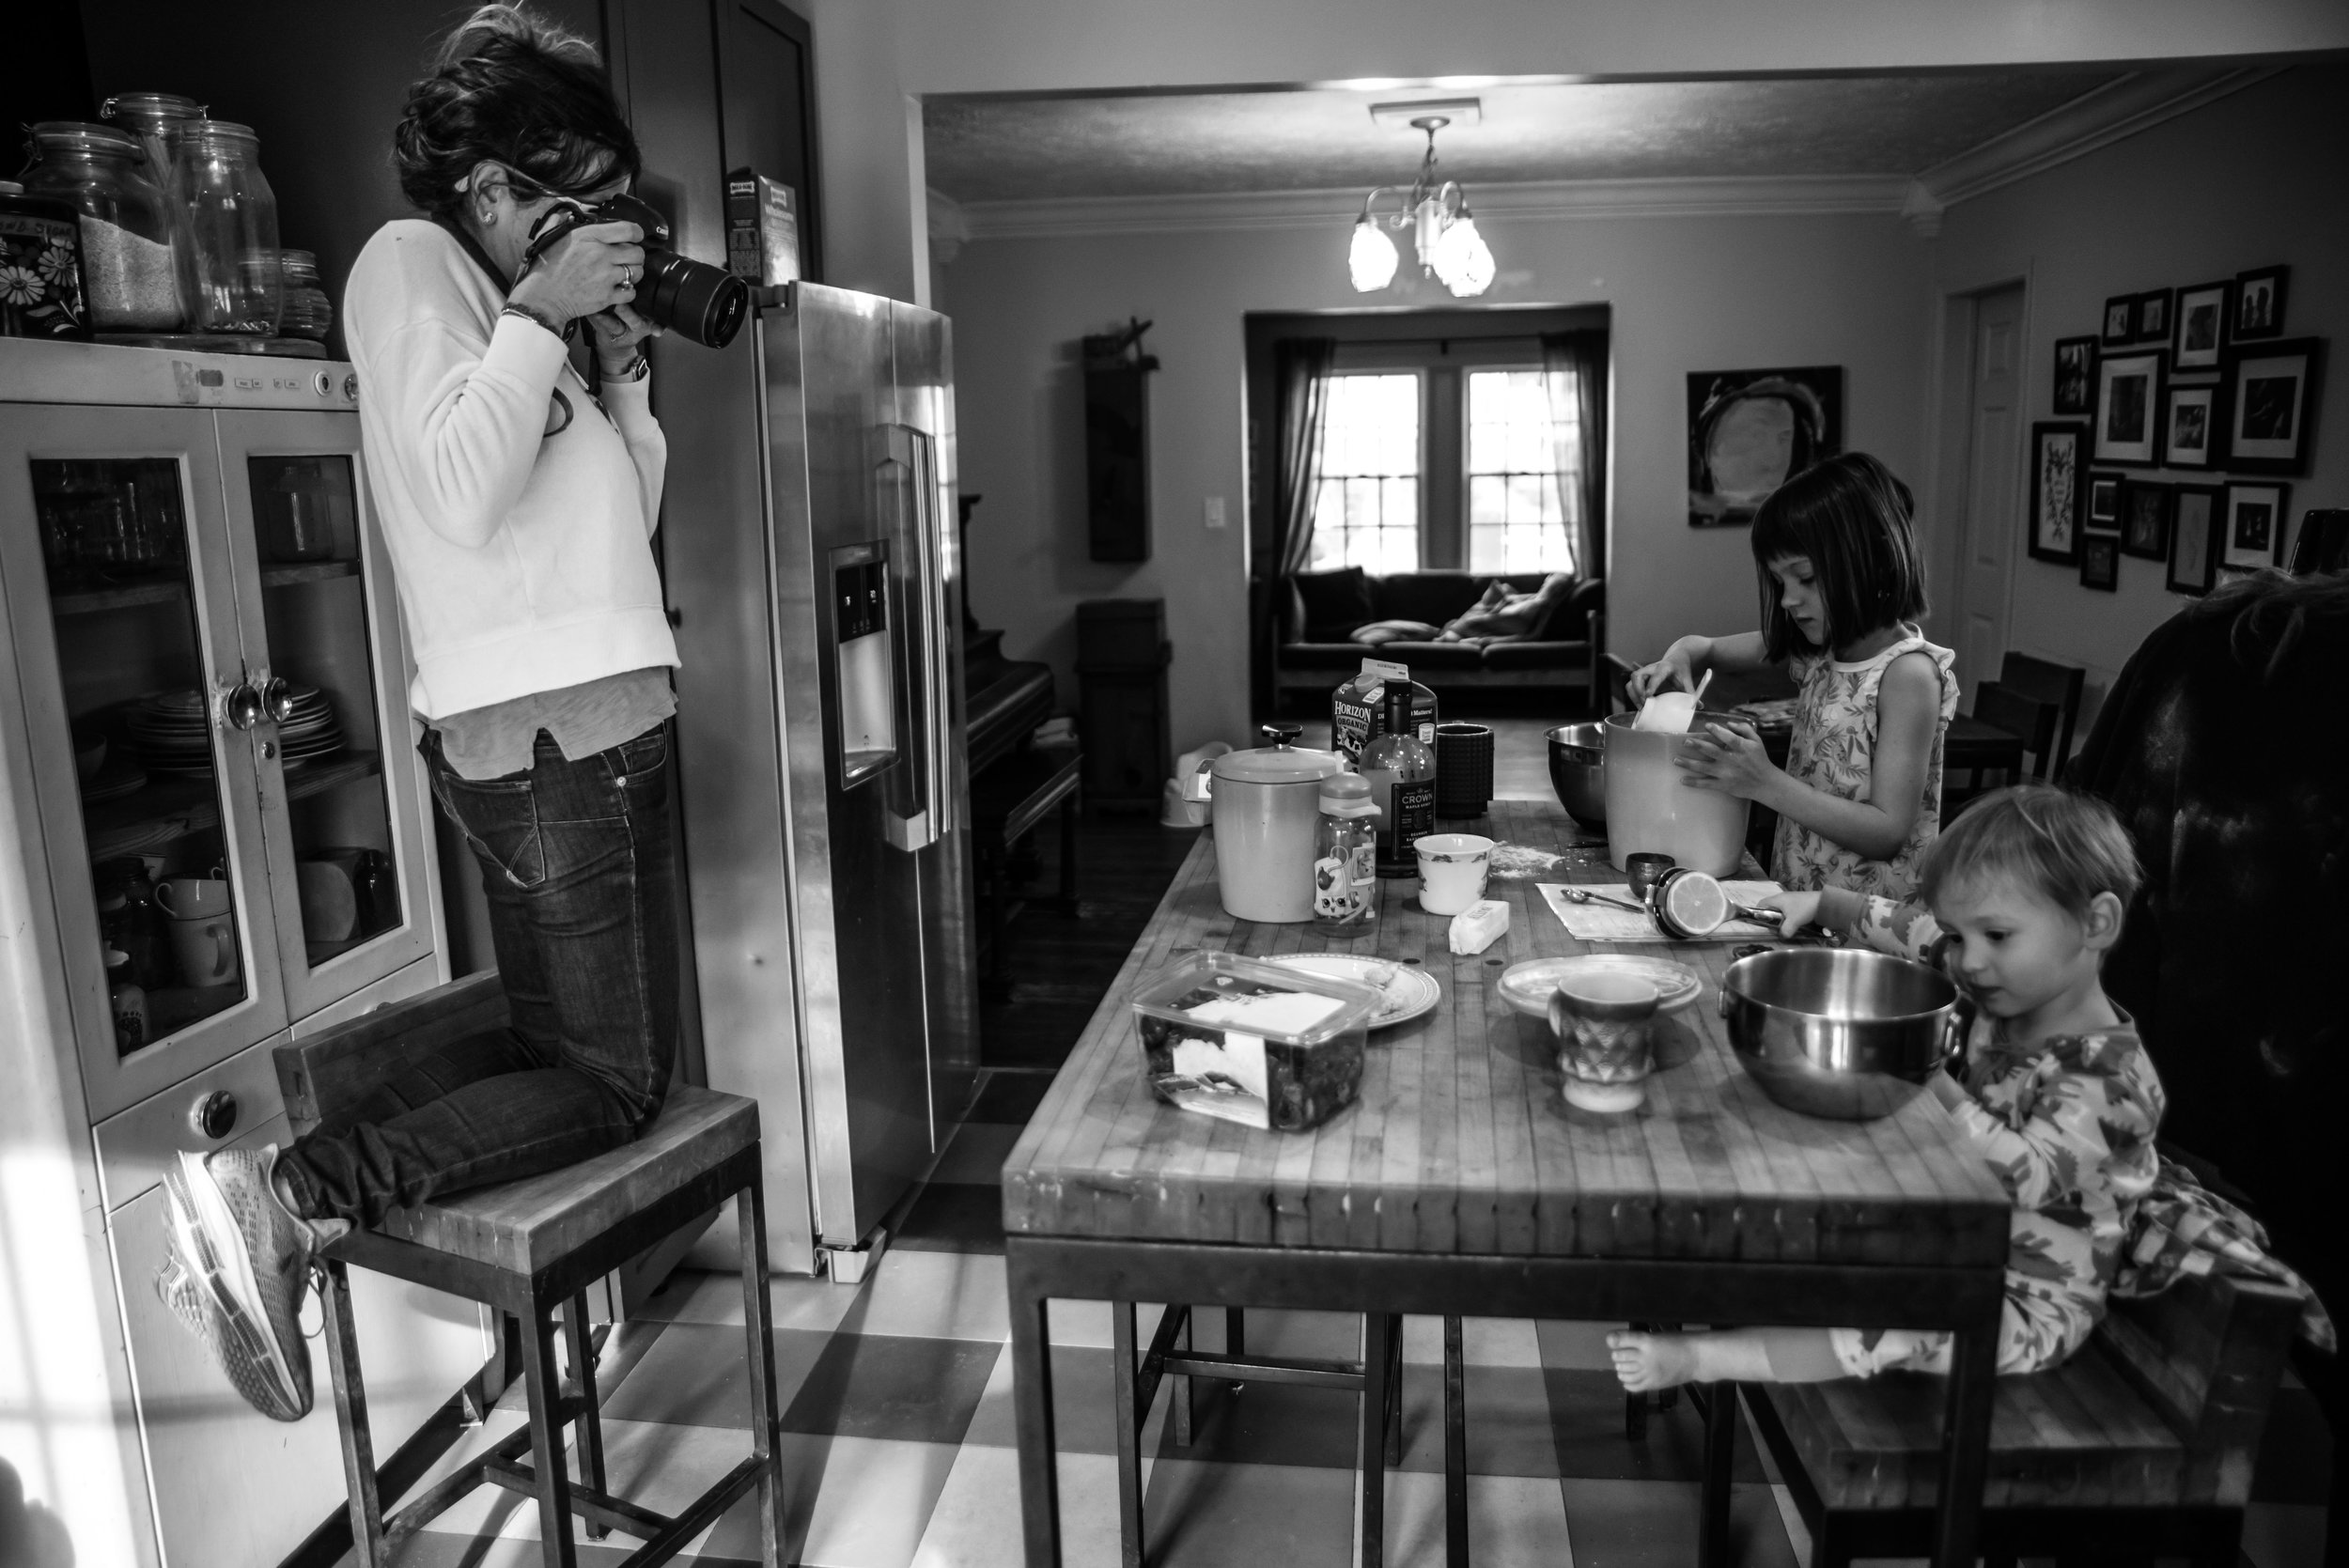 a photographer kneels on a chair and takes a picture of kids at the table making waffles